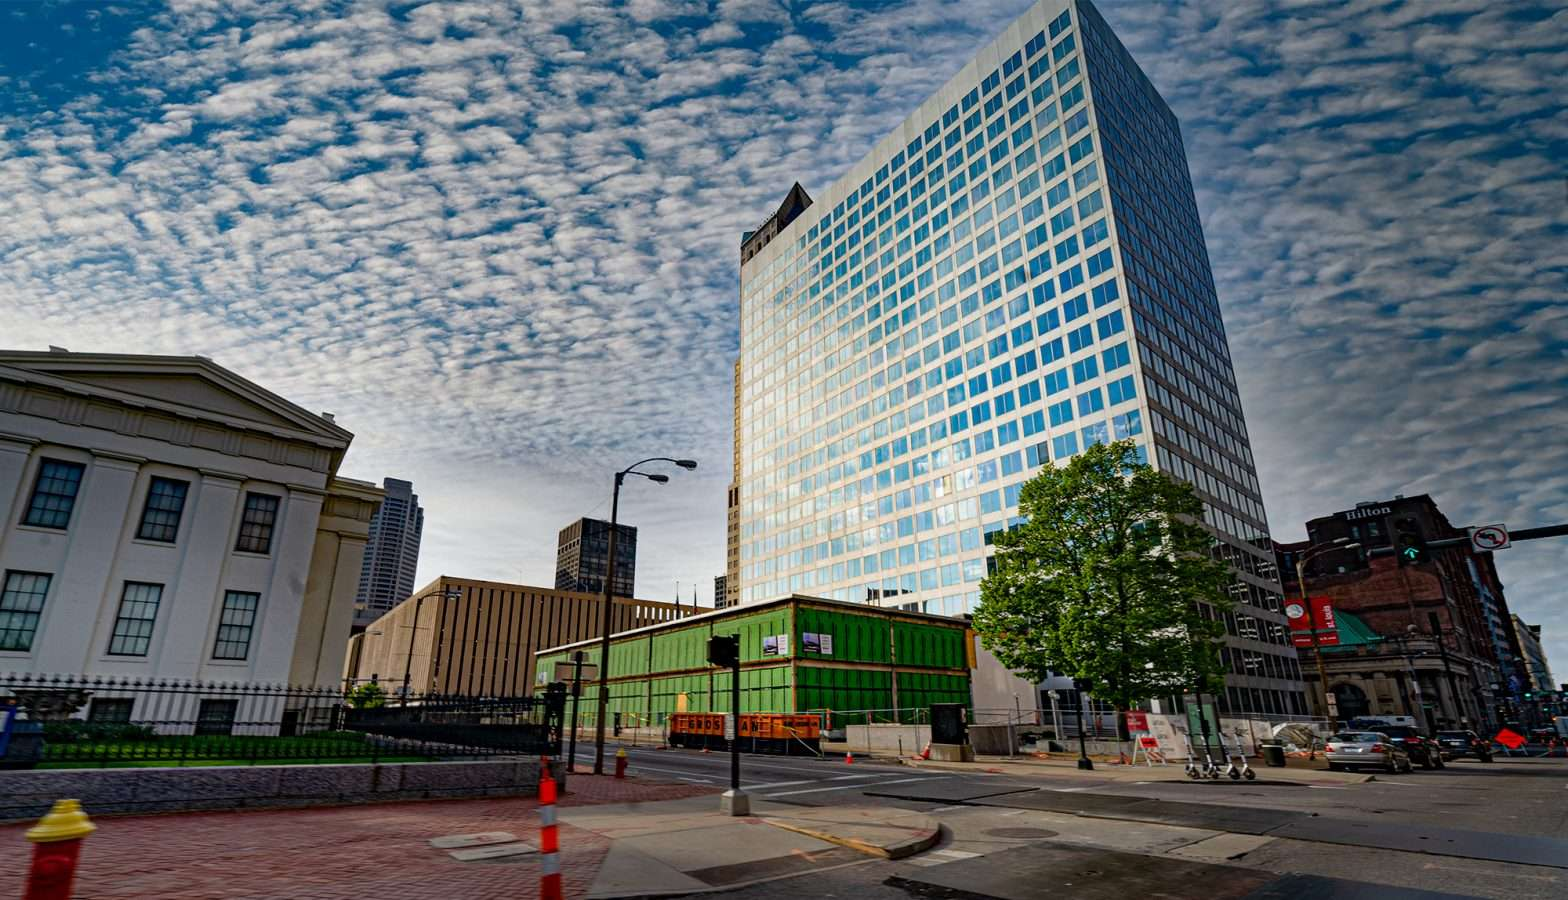 Broadway Tower 100 N. Broadway in St. Louis is under construction in April 2021. credit craig currie